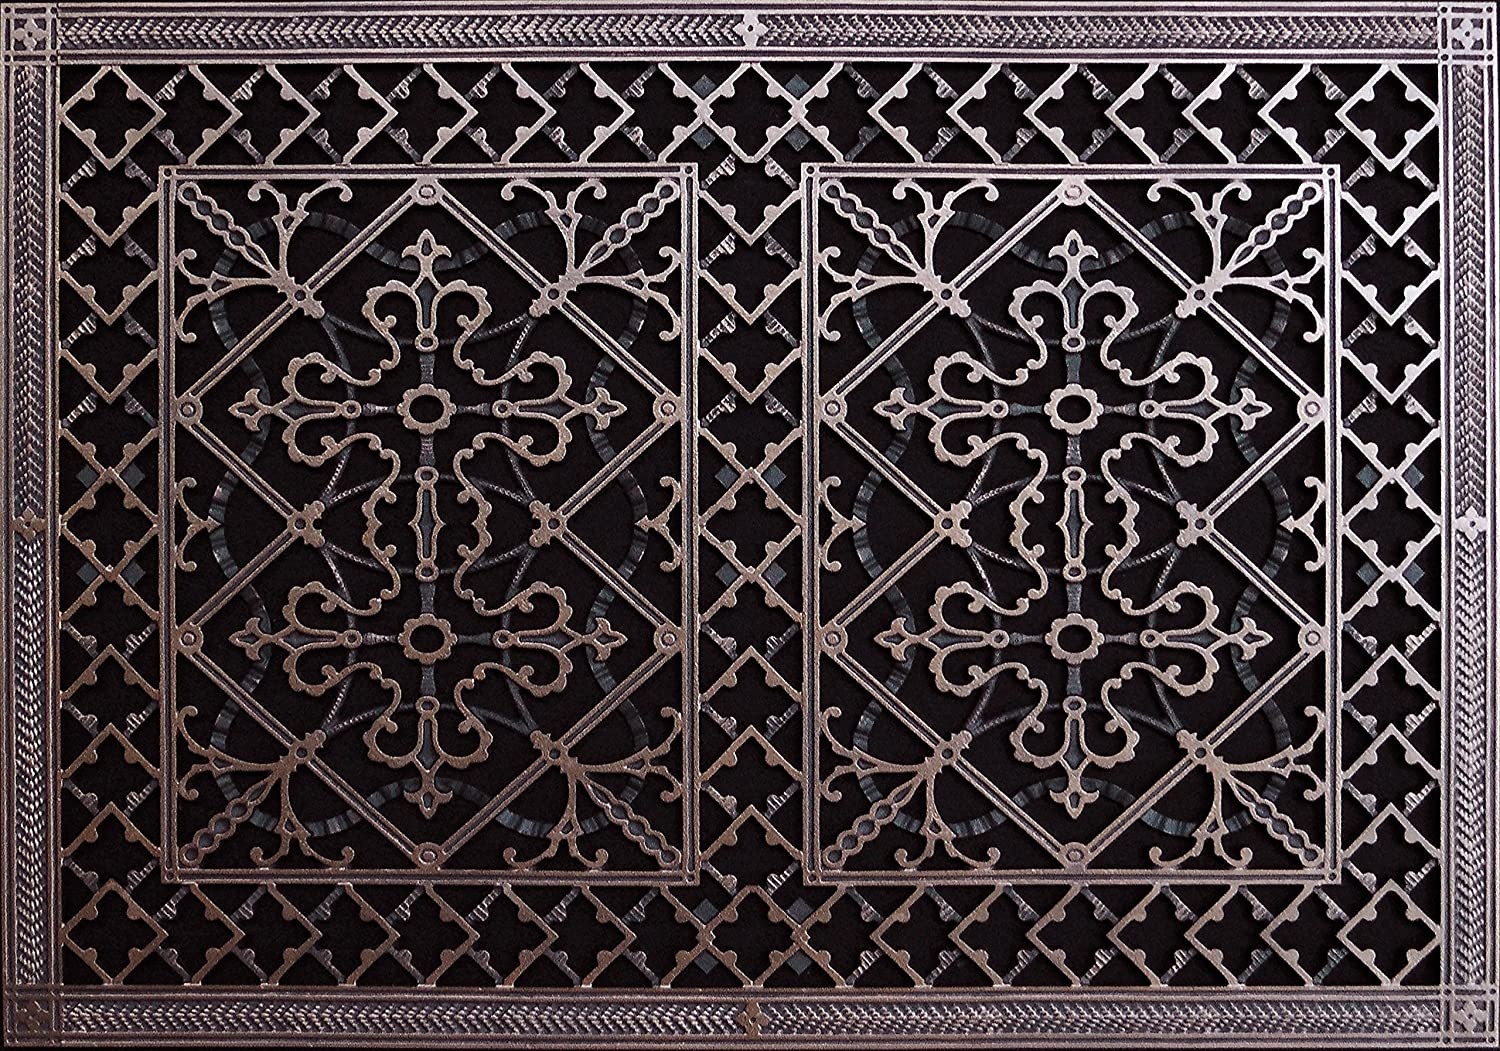 home decorati rectangular of excellent grilles as using accessories decor for metal cut image brown heating decorative vent dark wall decoration breathtaking interior